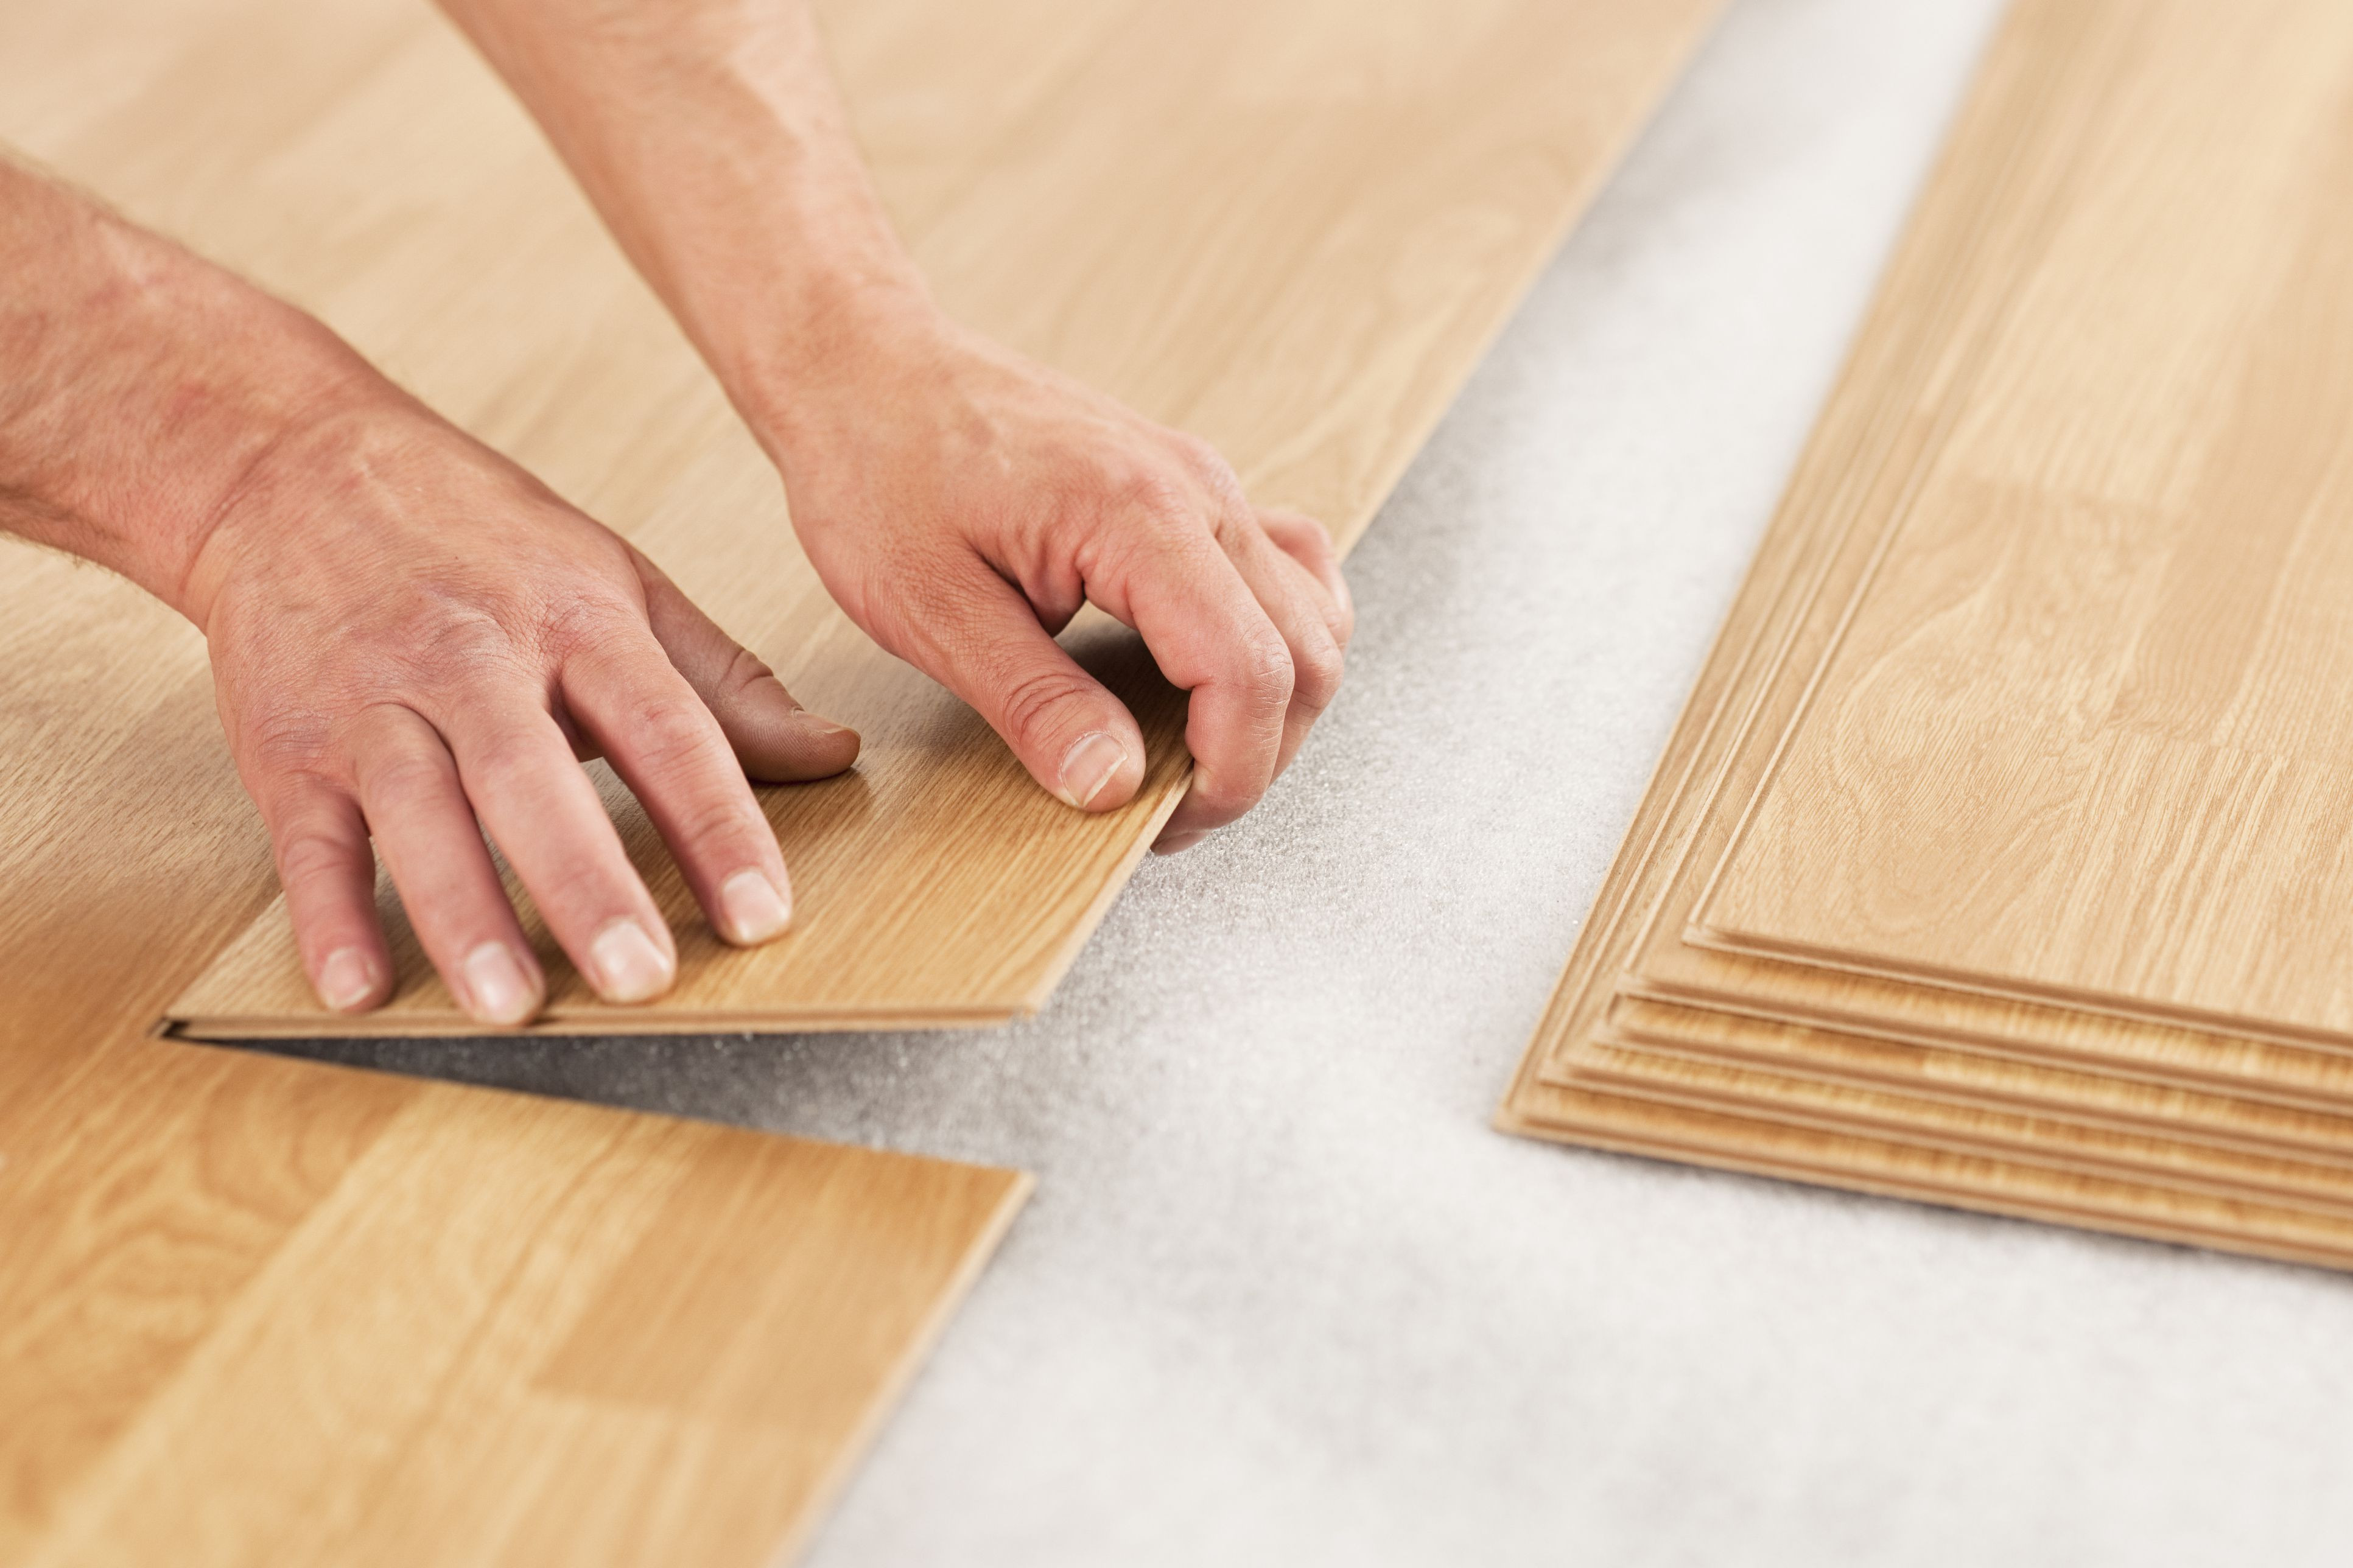 cleaning shaw engineered hardwood floors of how to reduce and prevent static on laminate flooring pertaining to picture of man s hands laying yellow laminate flooring 154961561 5875738e3df78c17b6de8341